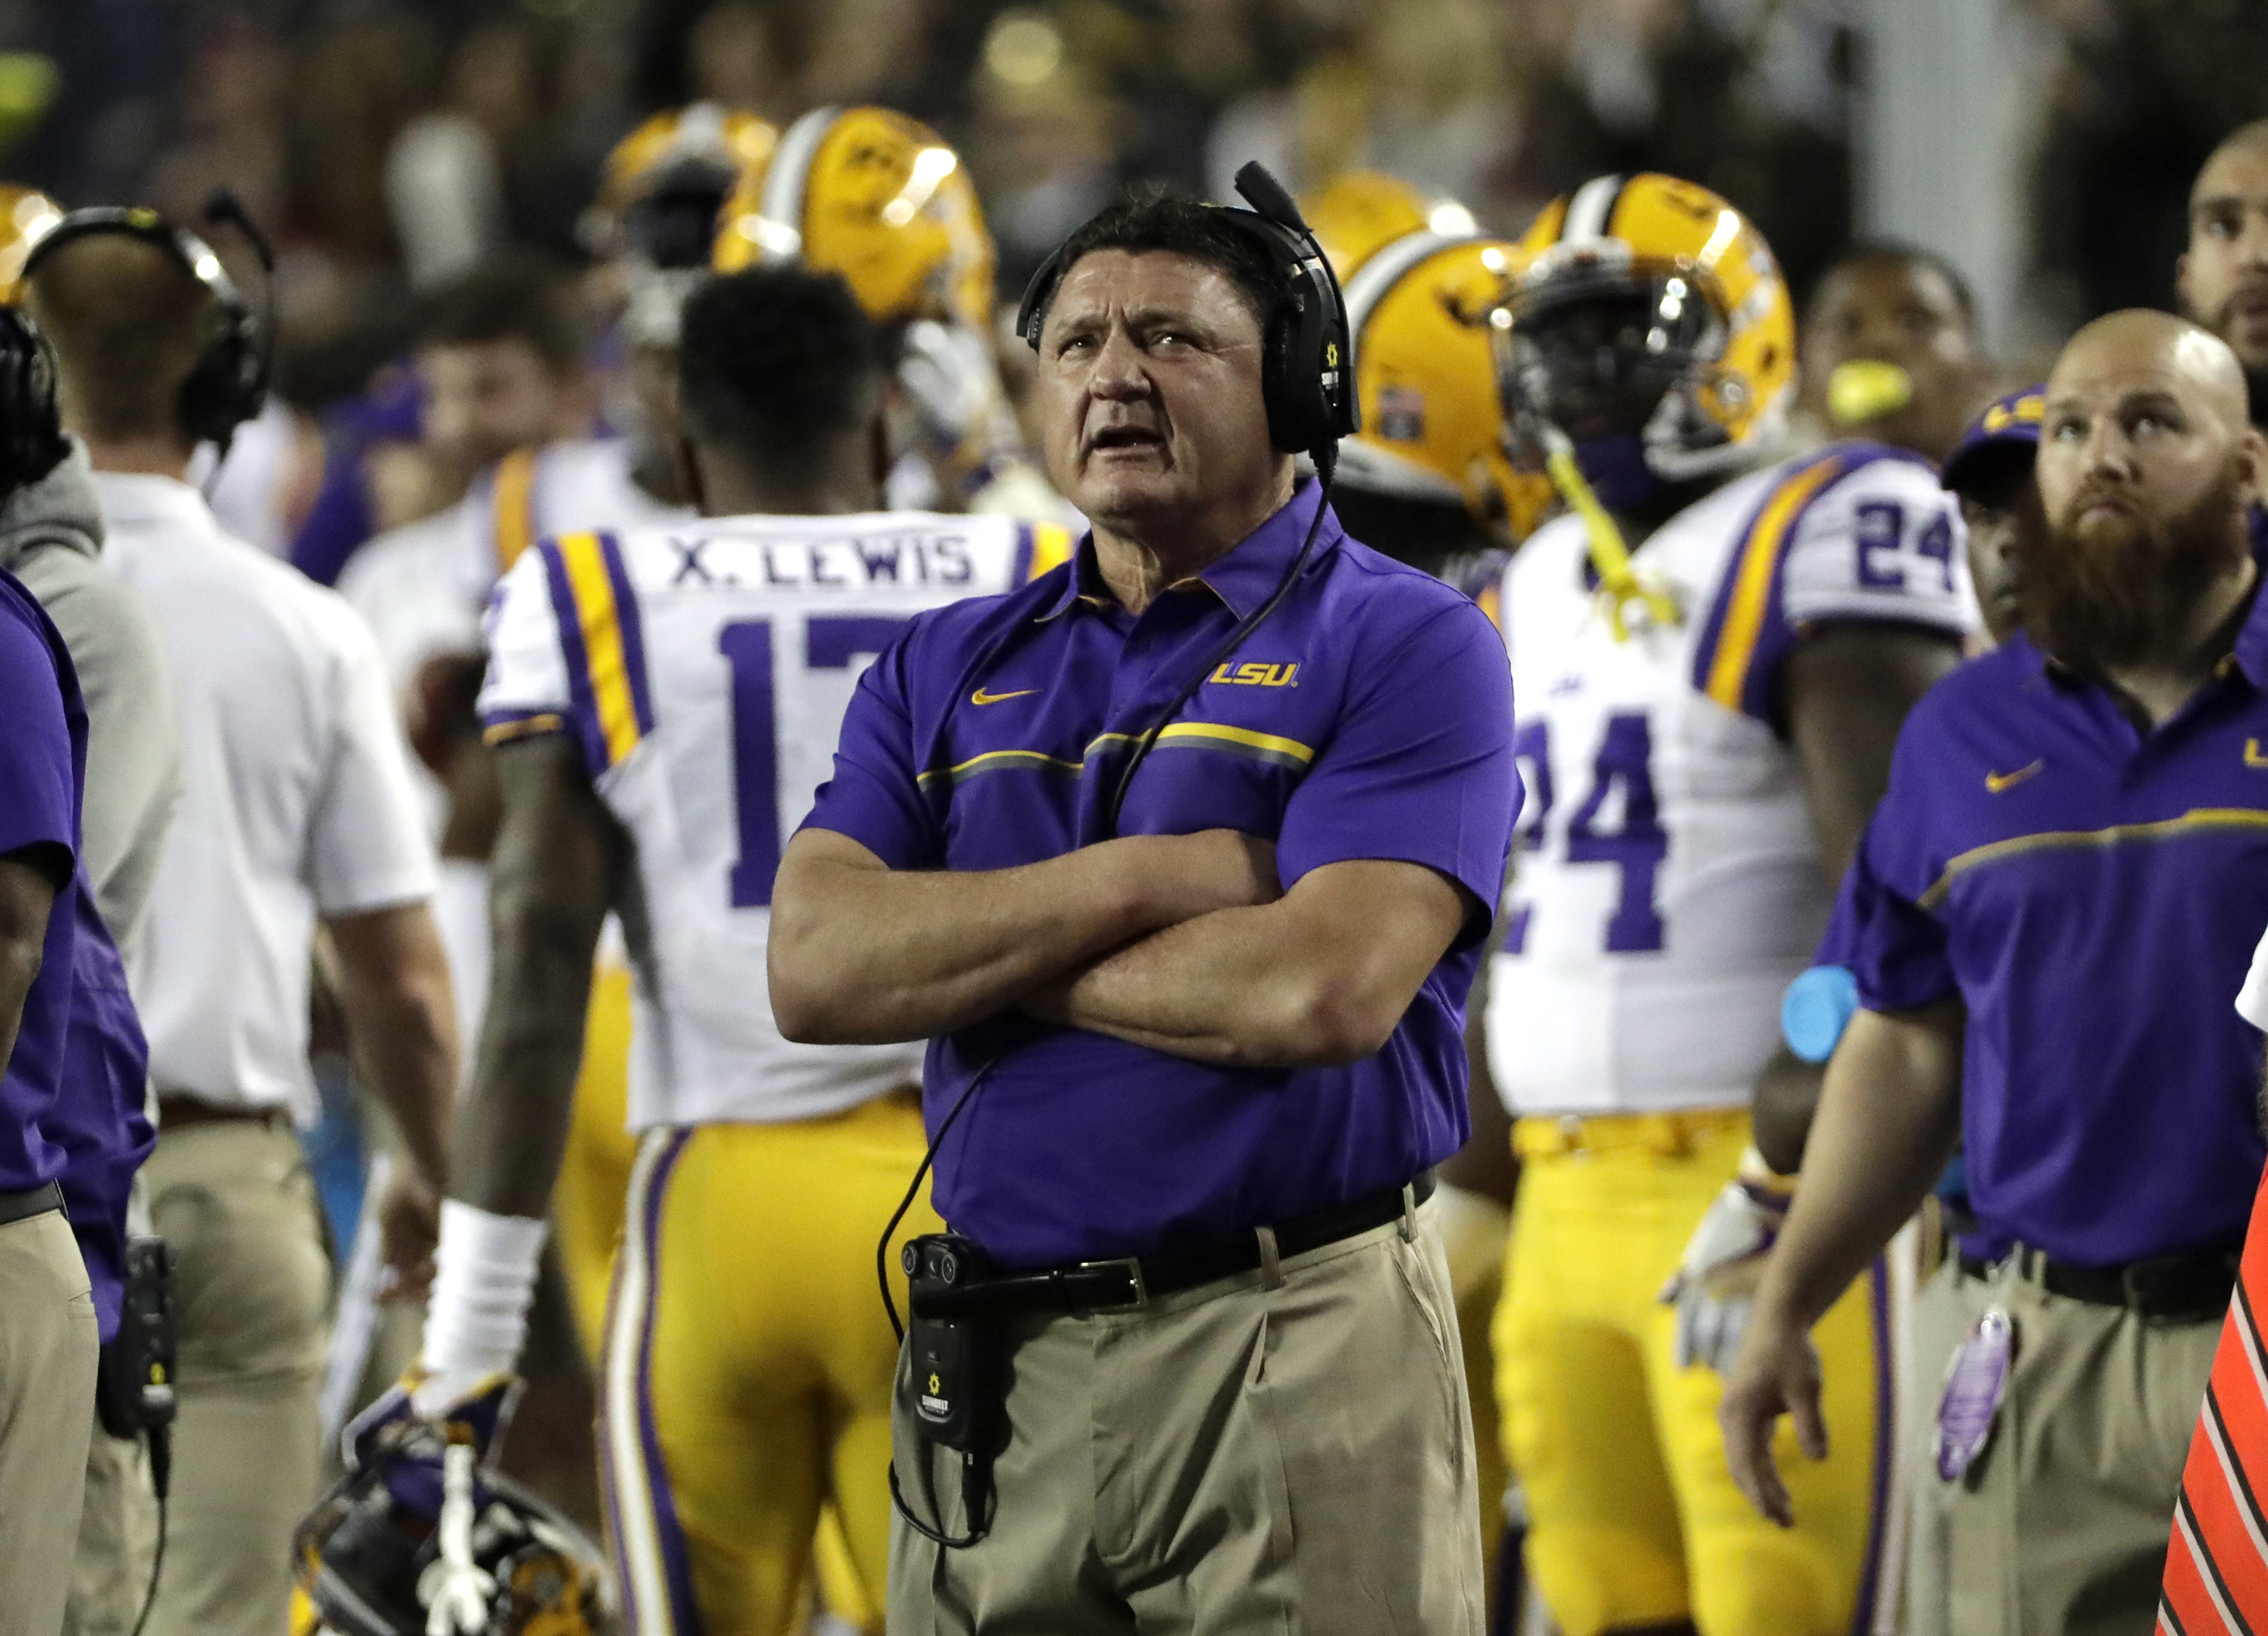 LSU coach Ed Orgeron looks up at the scoreboard after a Texas A&M touchdown during the first quarter of an NCAA college football game Thursday, Nov. 24, 2016, in College Station, Texas. (AP Photo/David J. Phillip)